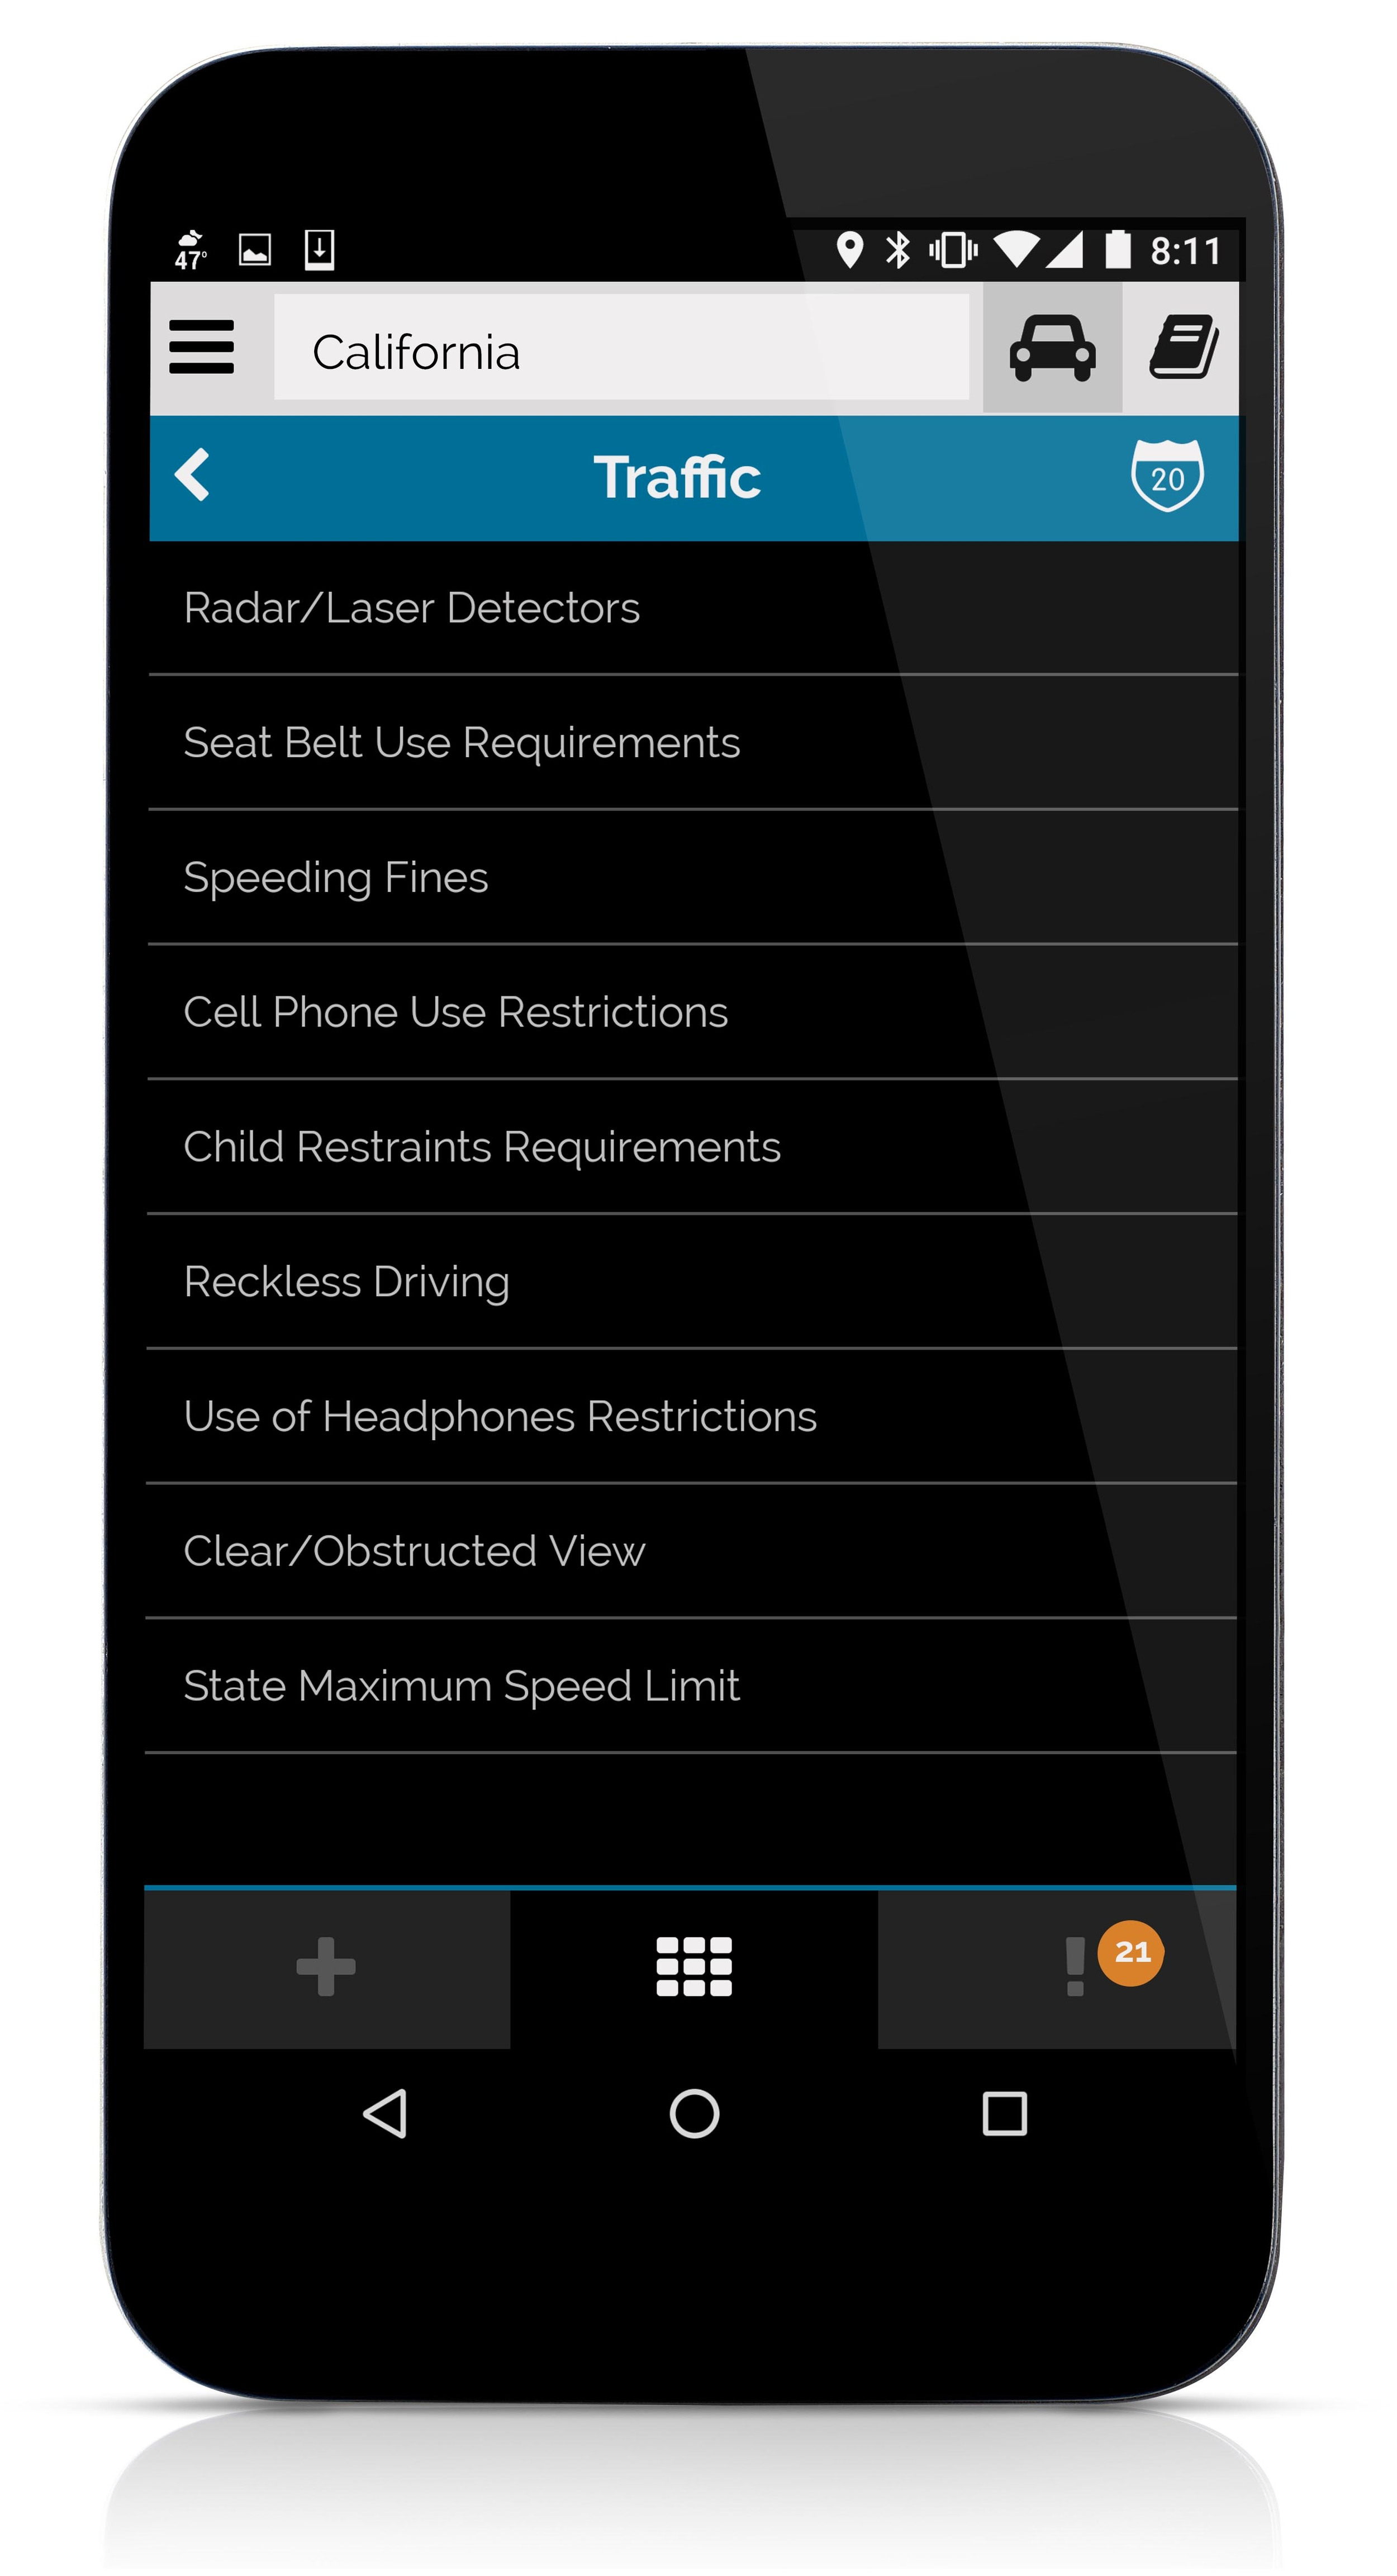 There are a lot of laws in each category, some of which you might care about more or less than the rest. Adjust each law individually for more custom tailored updates. All laws with a priority of 2 or higher are logged in the app. Level 3 will notify you when laws of that category changed. 4 and up pushes individual law changes.